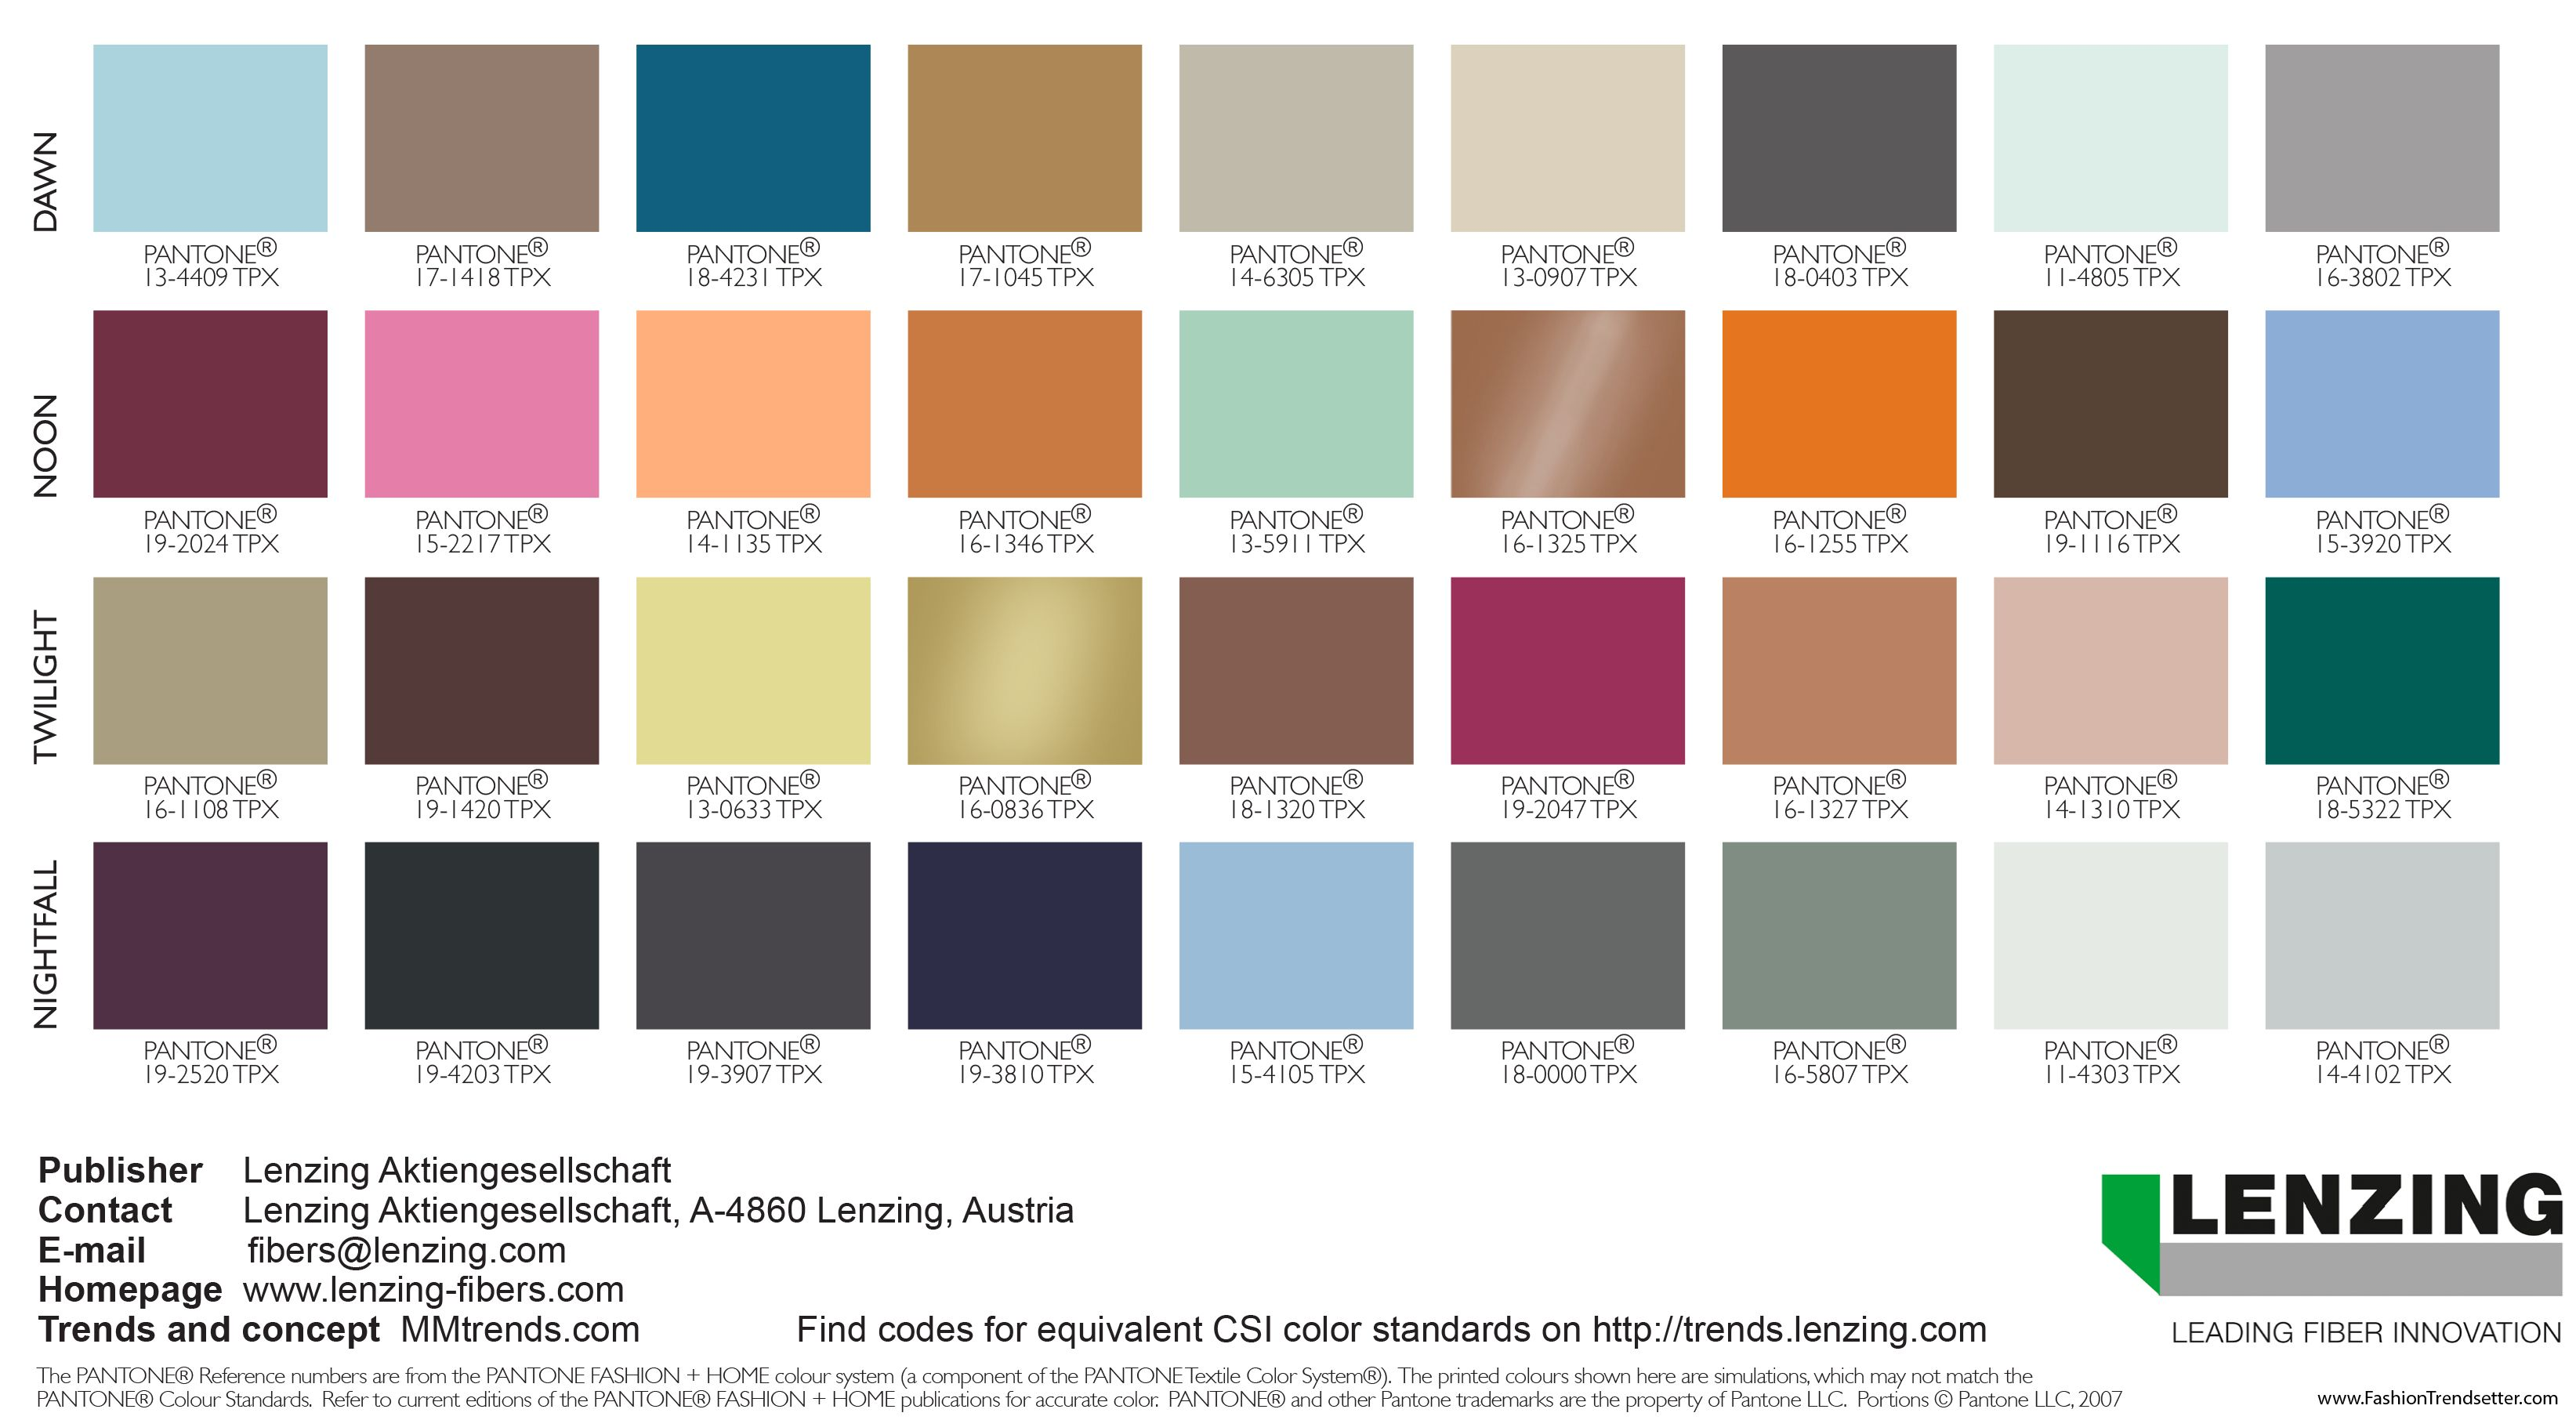 Fall Winter 2020 Color Trends.Lenzing Color Trends Autumn Winter 2019 2020 Color Trends